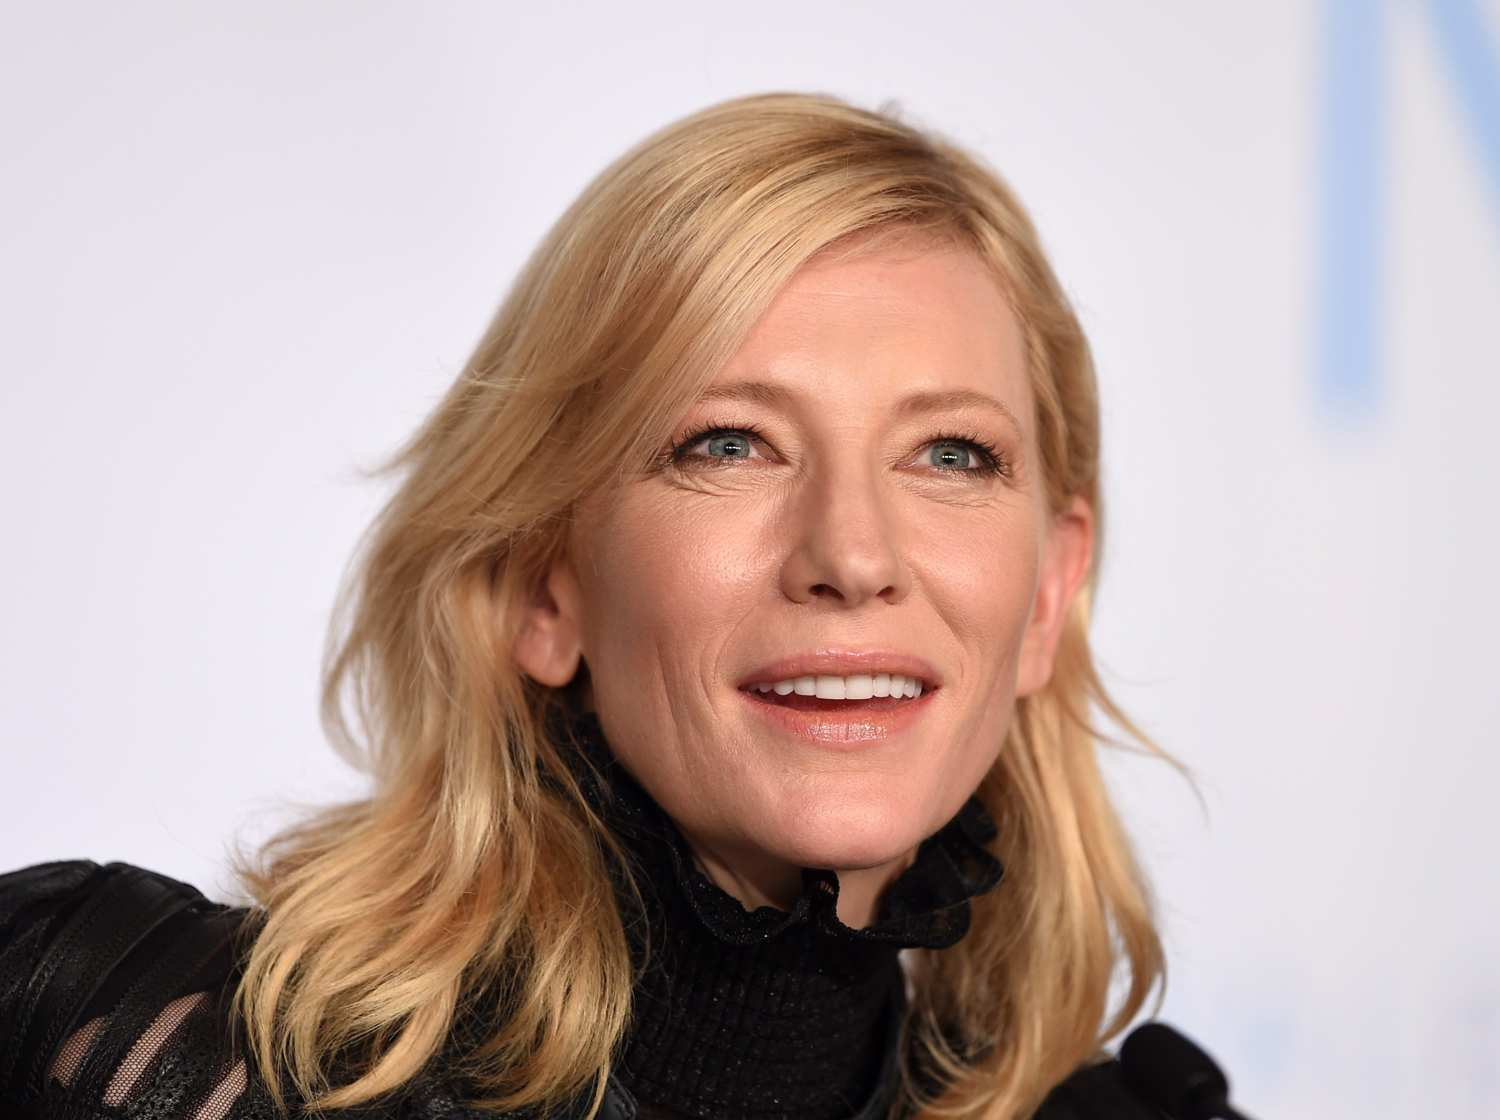 HQ Cate Blanchett Wallpapers | File 79.54Kb